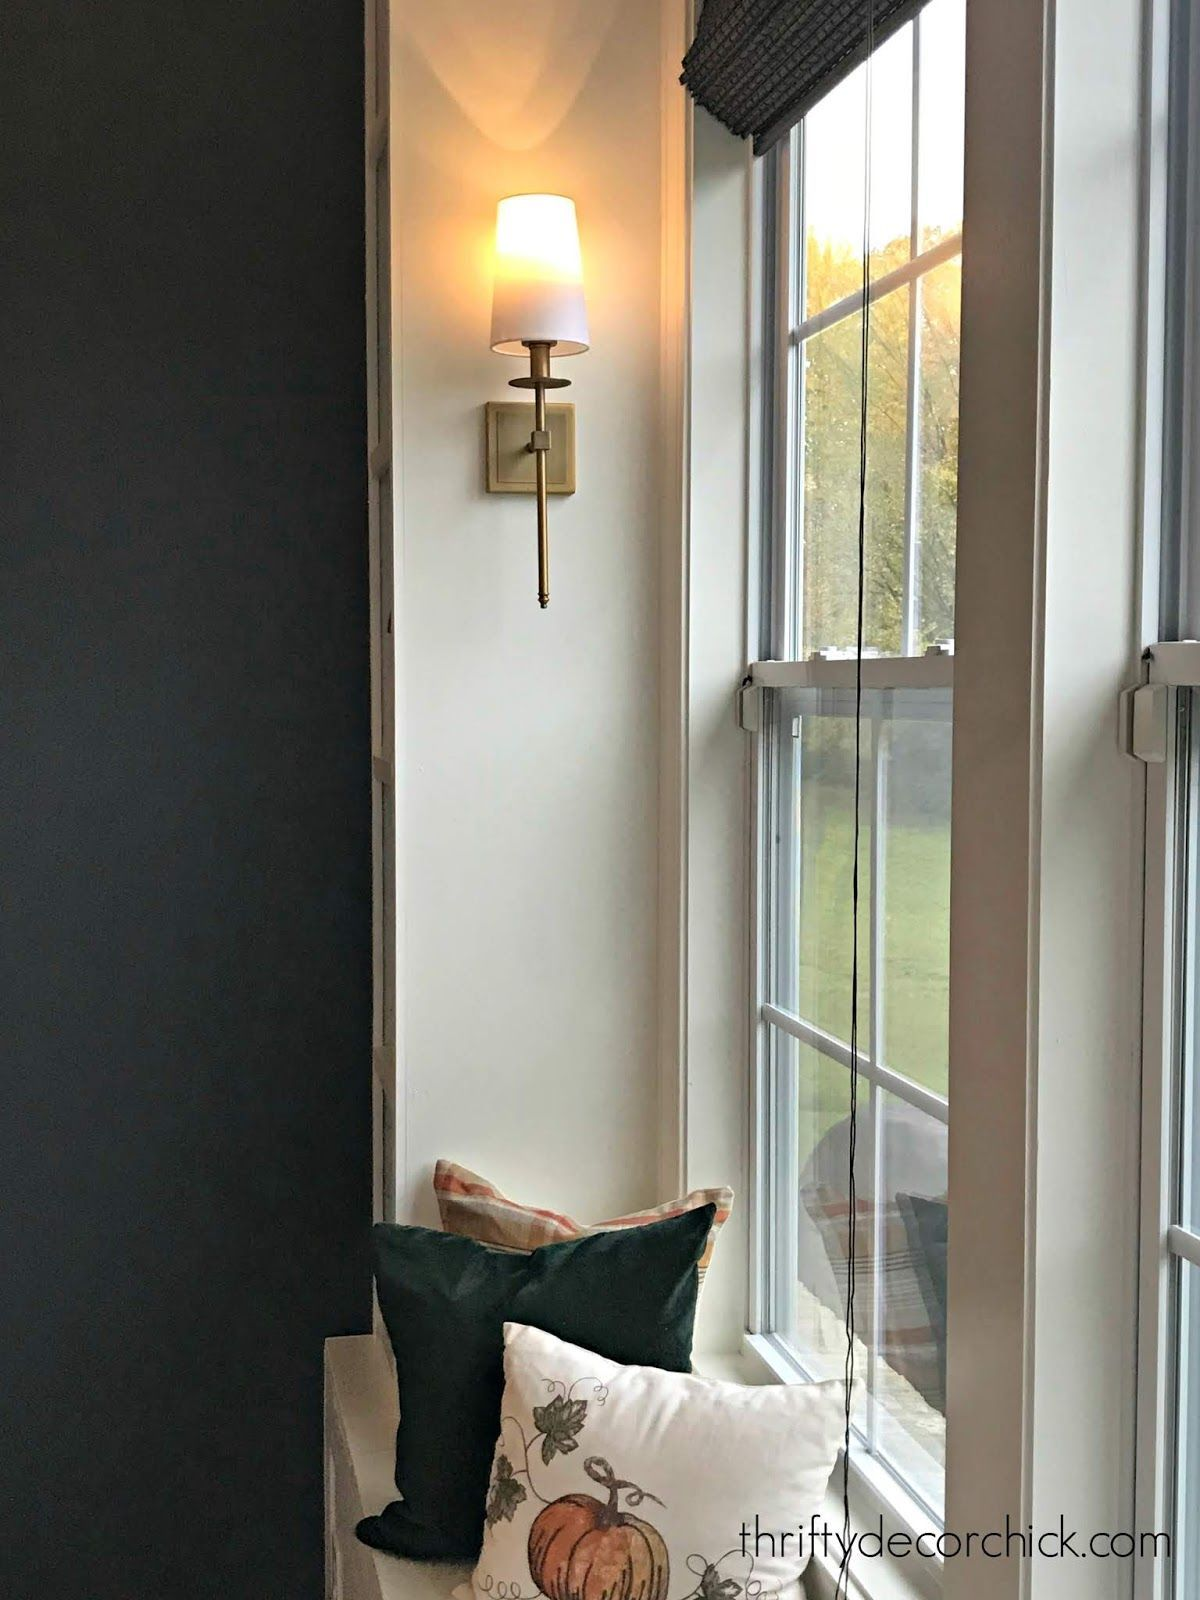 How To Light Sconces Without Electricity Brilliant Idea And So Easy Sconces Diyhomedecor Bes Diy Sconces Wall Sconces Living Room Sconces Living Room